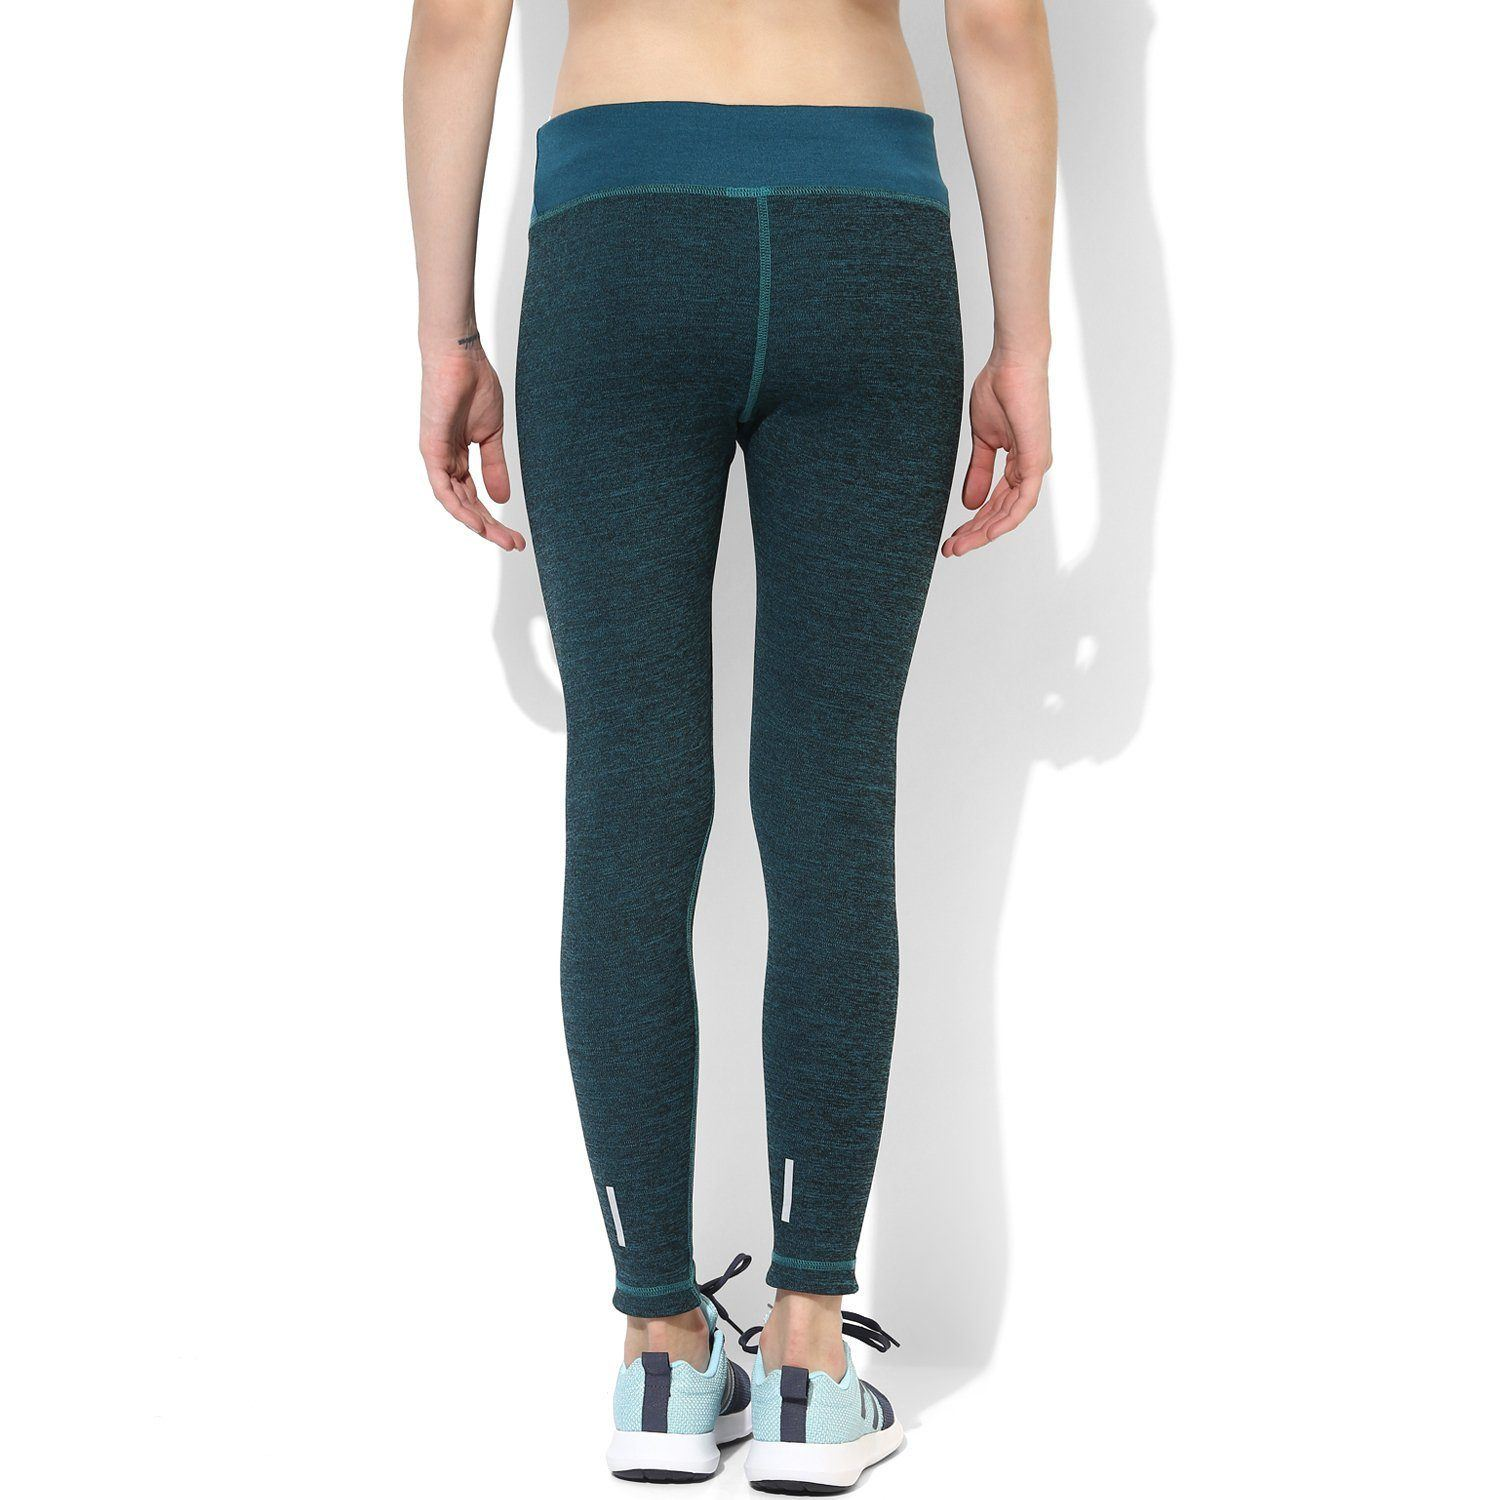 Silvertraq Womens Melange Training Tights